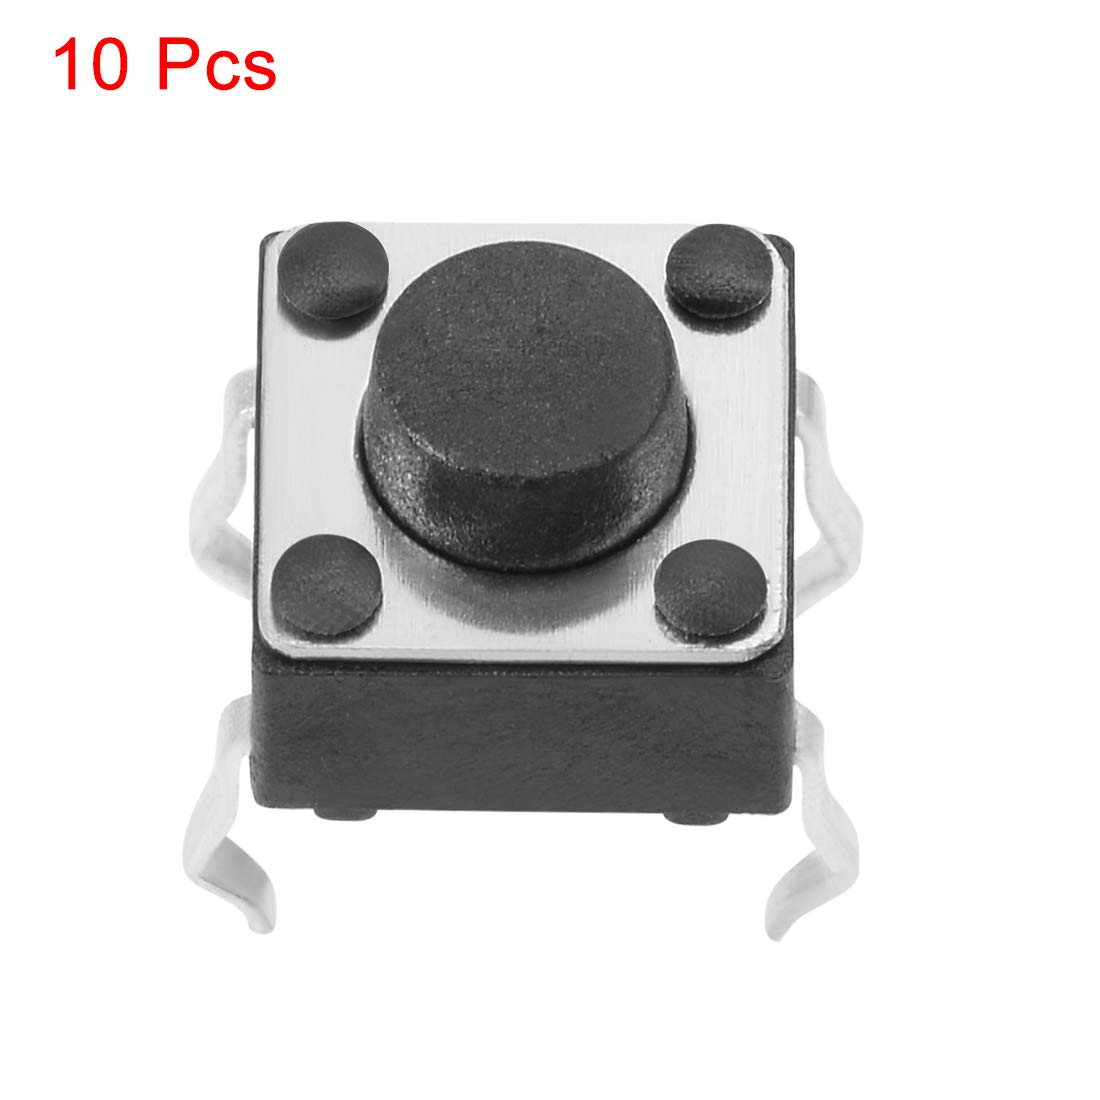 uxcell 6x6x7mm Panel Mini PCB Momentary Tactile Tact Push Button Switch Dip 10PCS a18062200ux0474